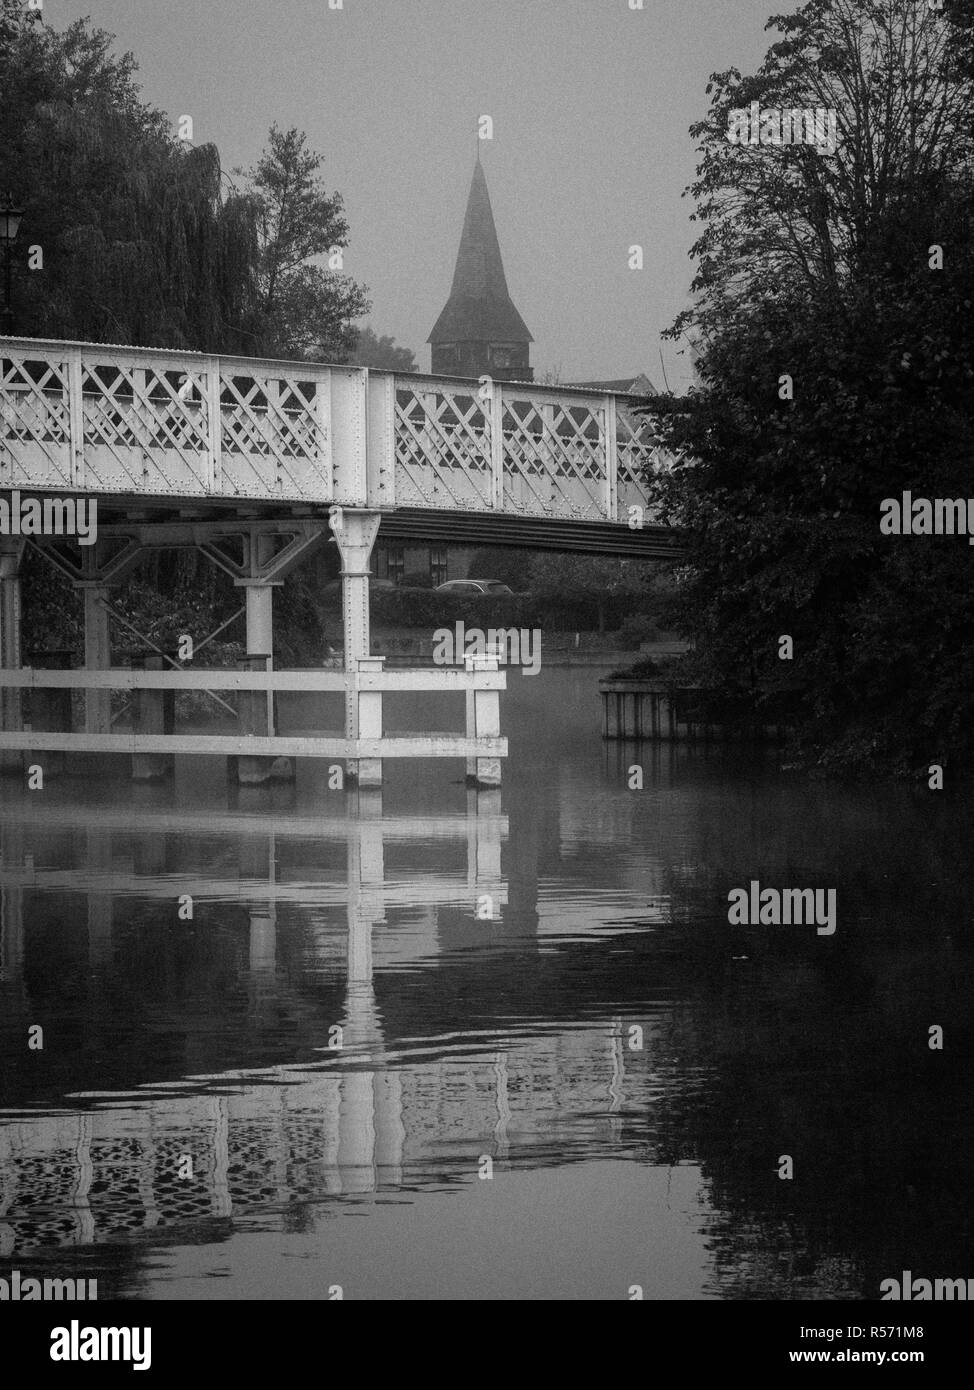 Early morning River Thames, Whitchurch Bridge, near Pangbourne-on-Thames, Reading, Berkshire Oxfordshire, Boarder, England, UK, GB - Stock Image